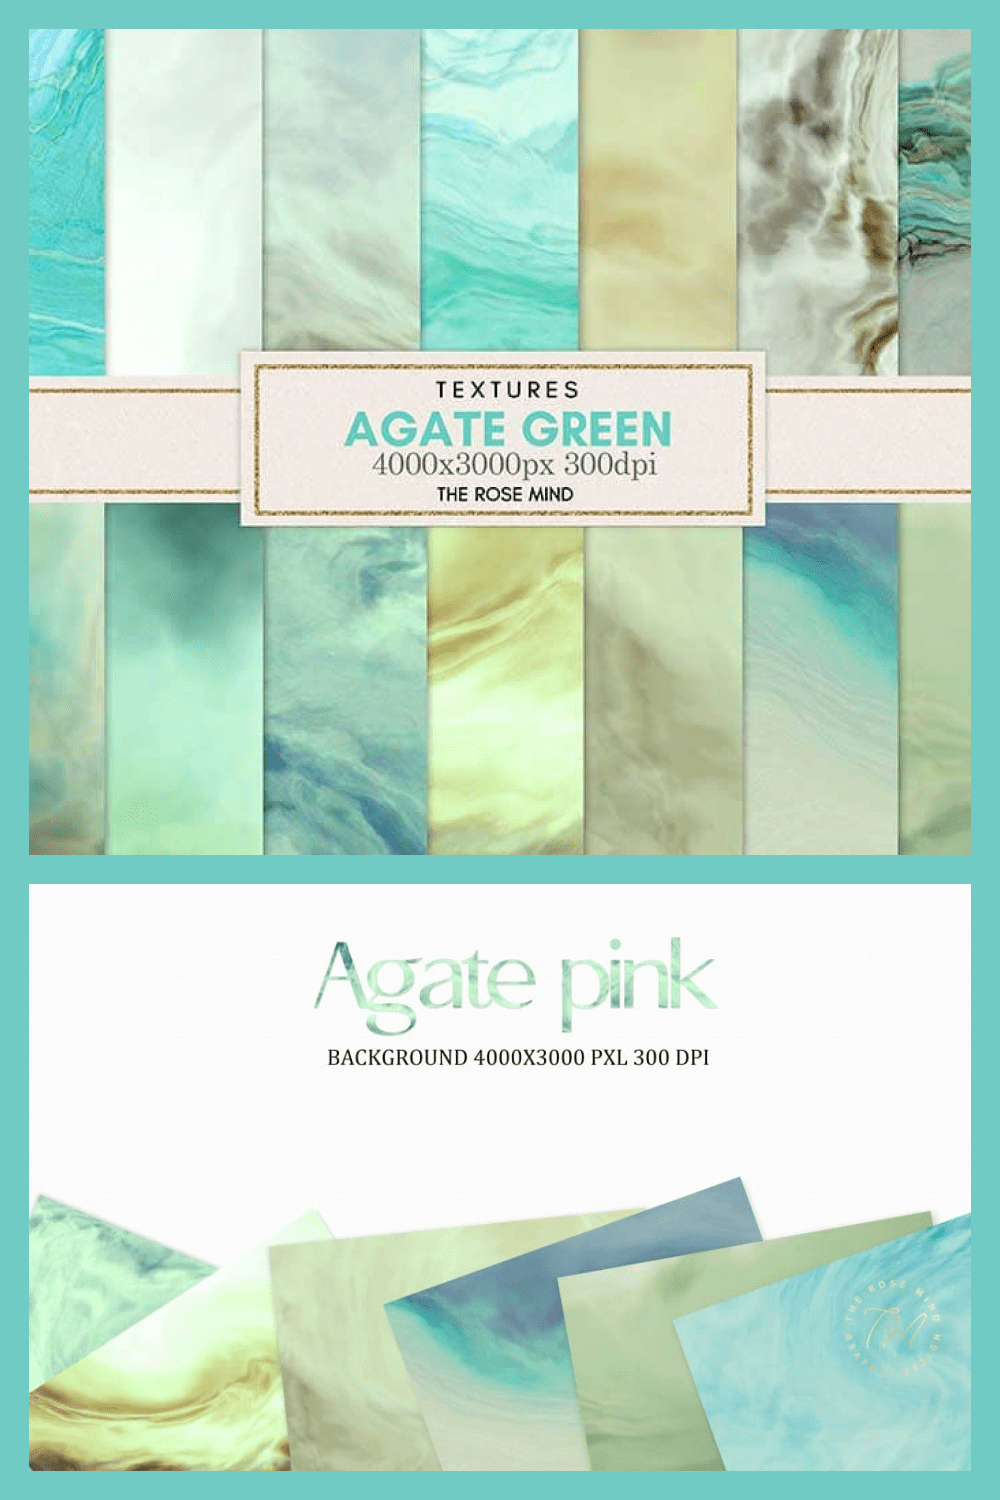 Agate Green: Collection of 18 Green Digital Papers - MasterBundles - Pinterest Collage Image.